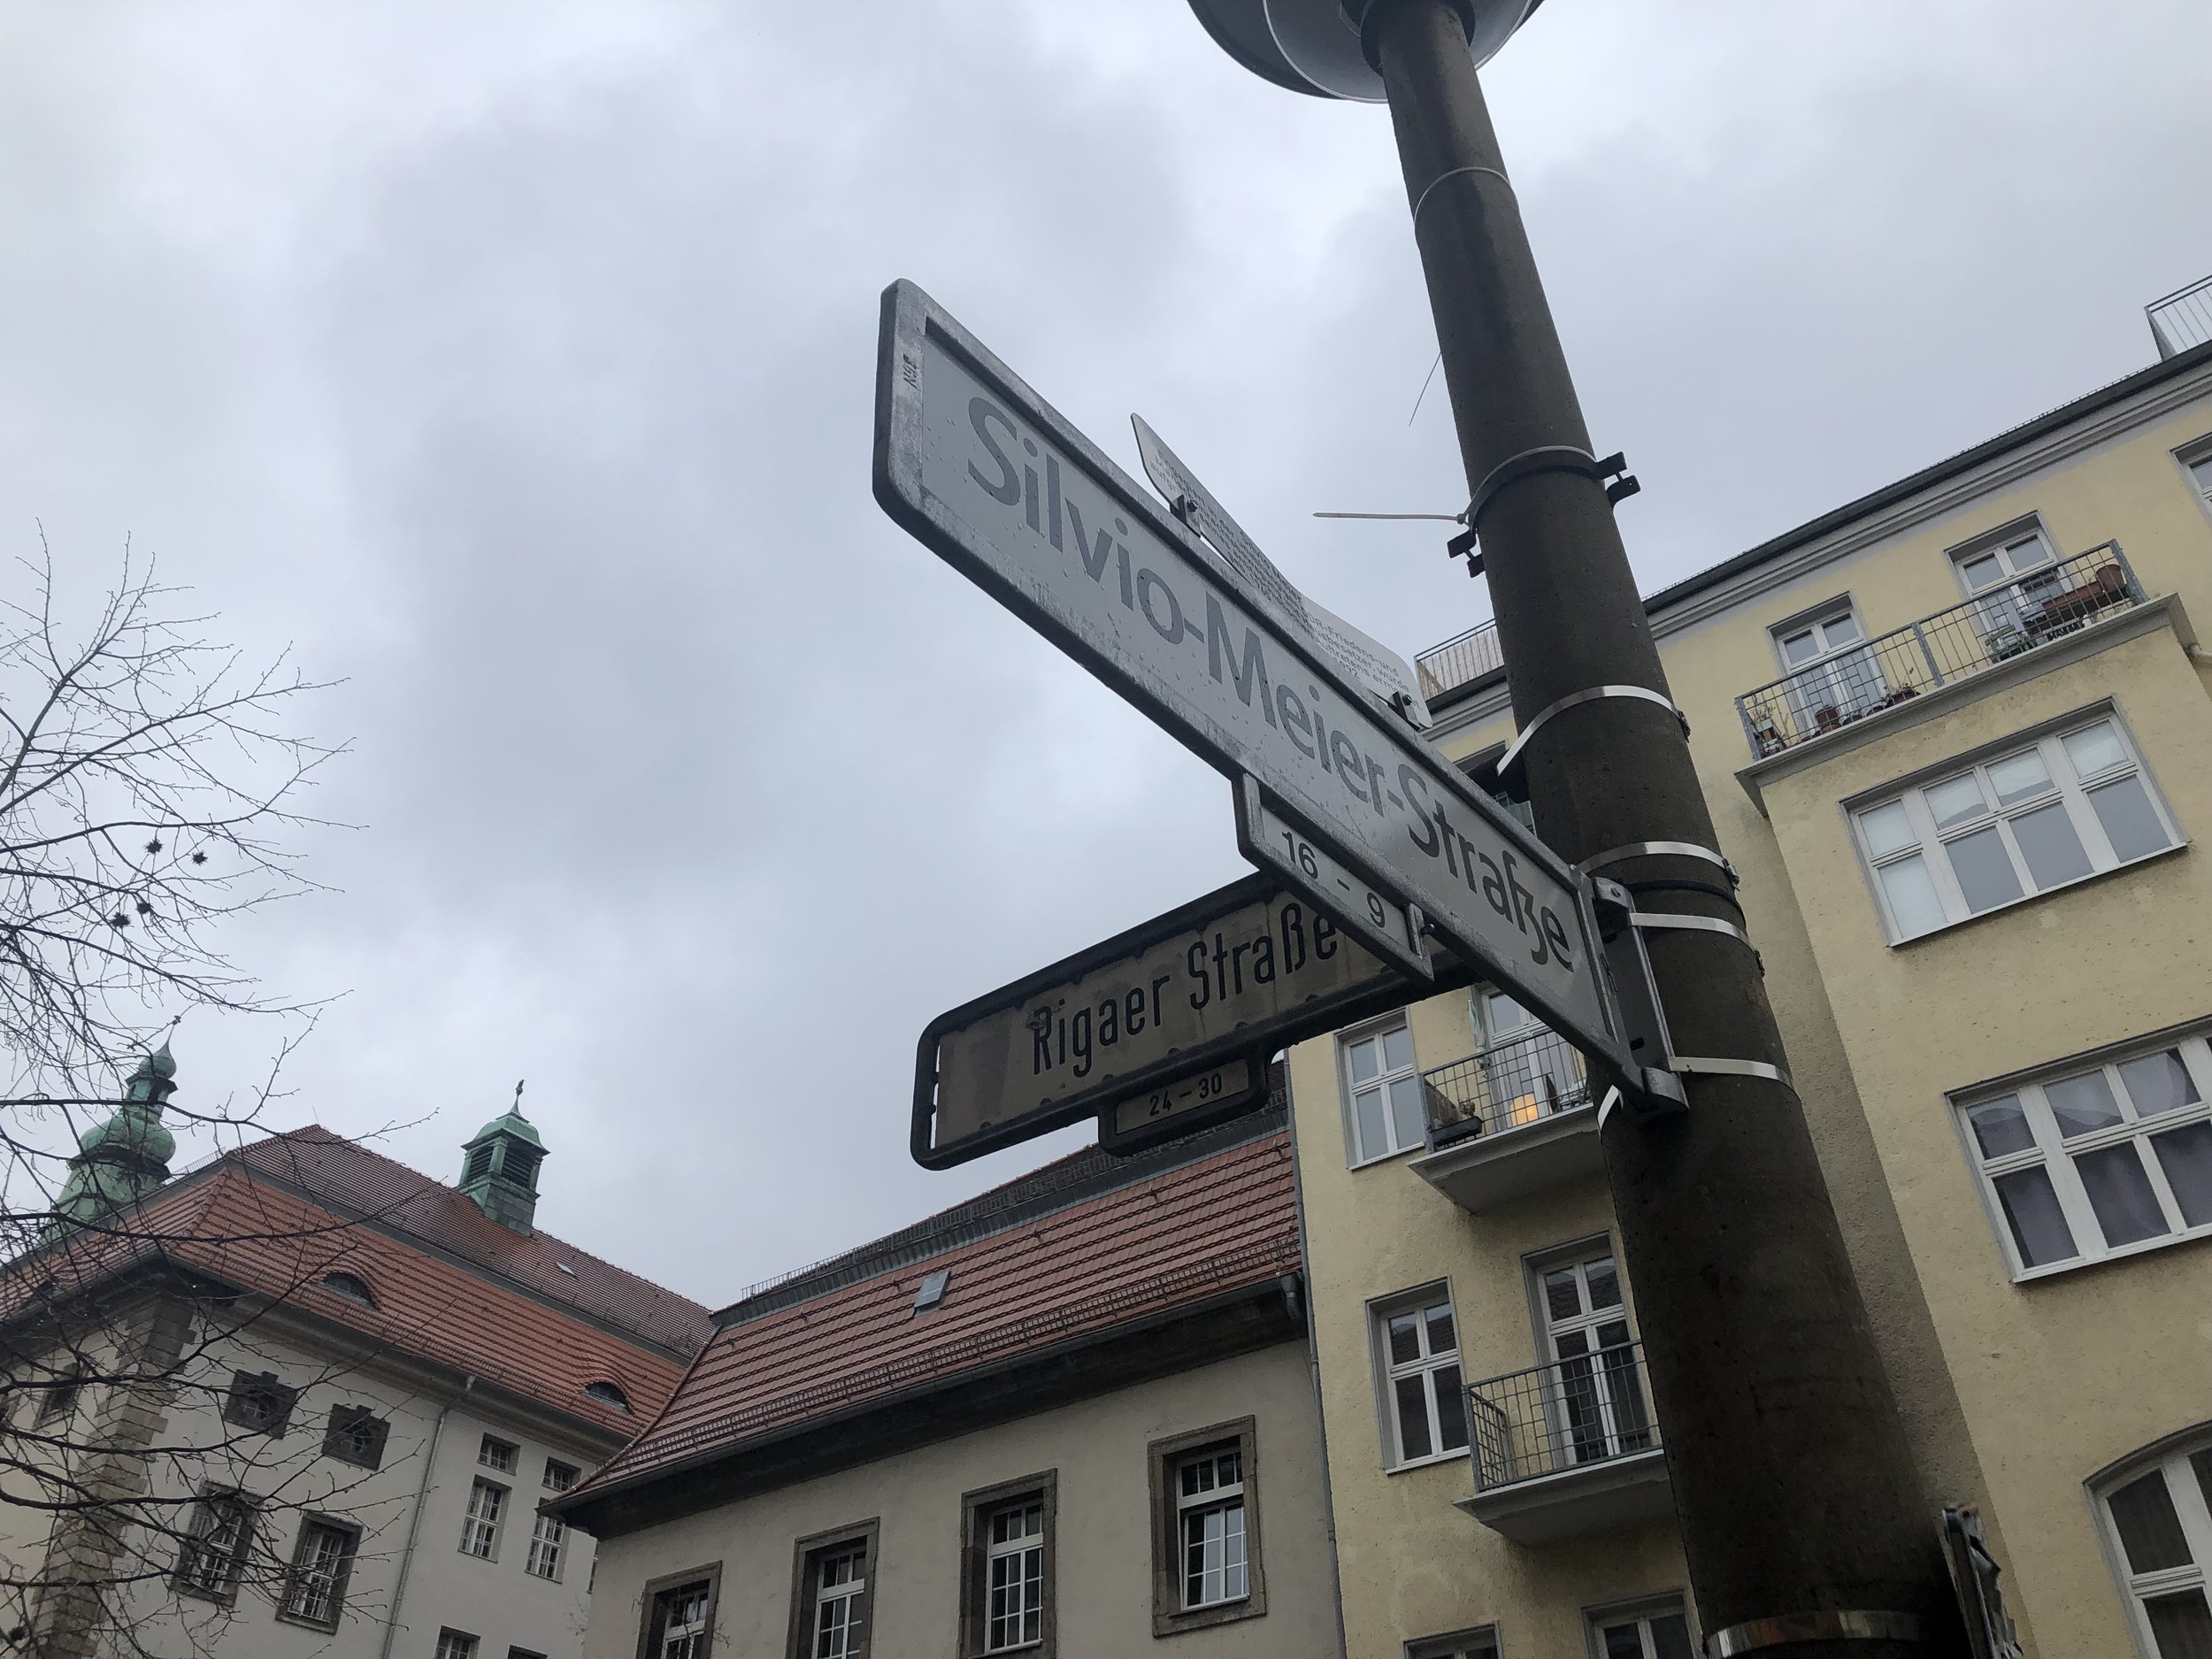 Intersection of Rigaer Straße and Silvio Meier Straße. Silvio Meier was a leftist activist who was murdered by Neo-Nazis in 1992.